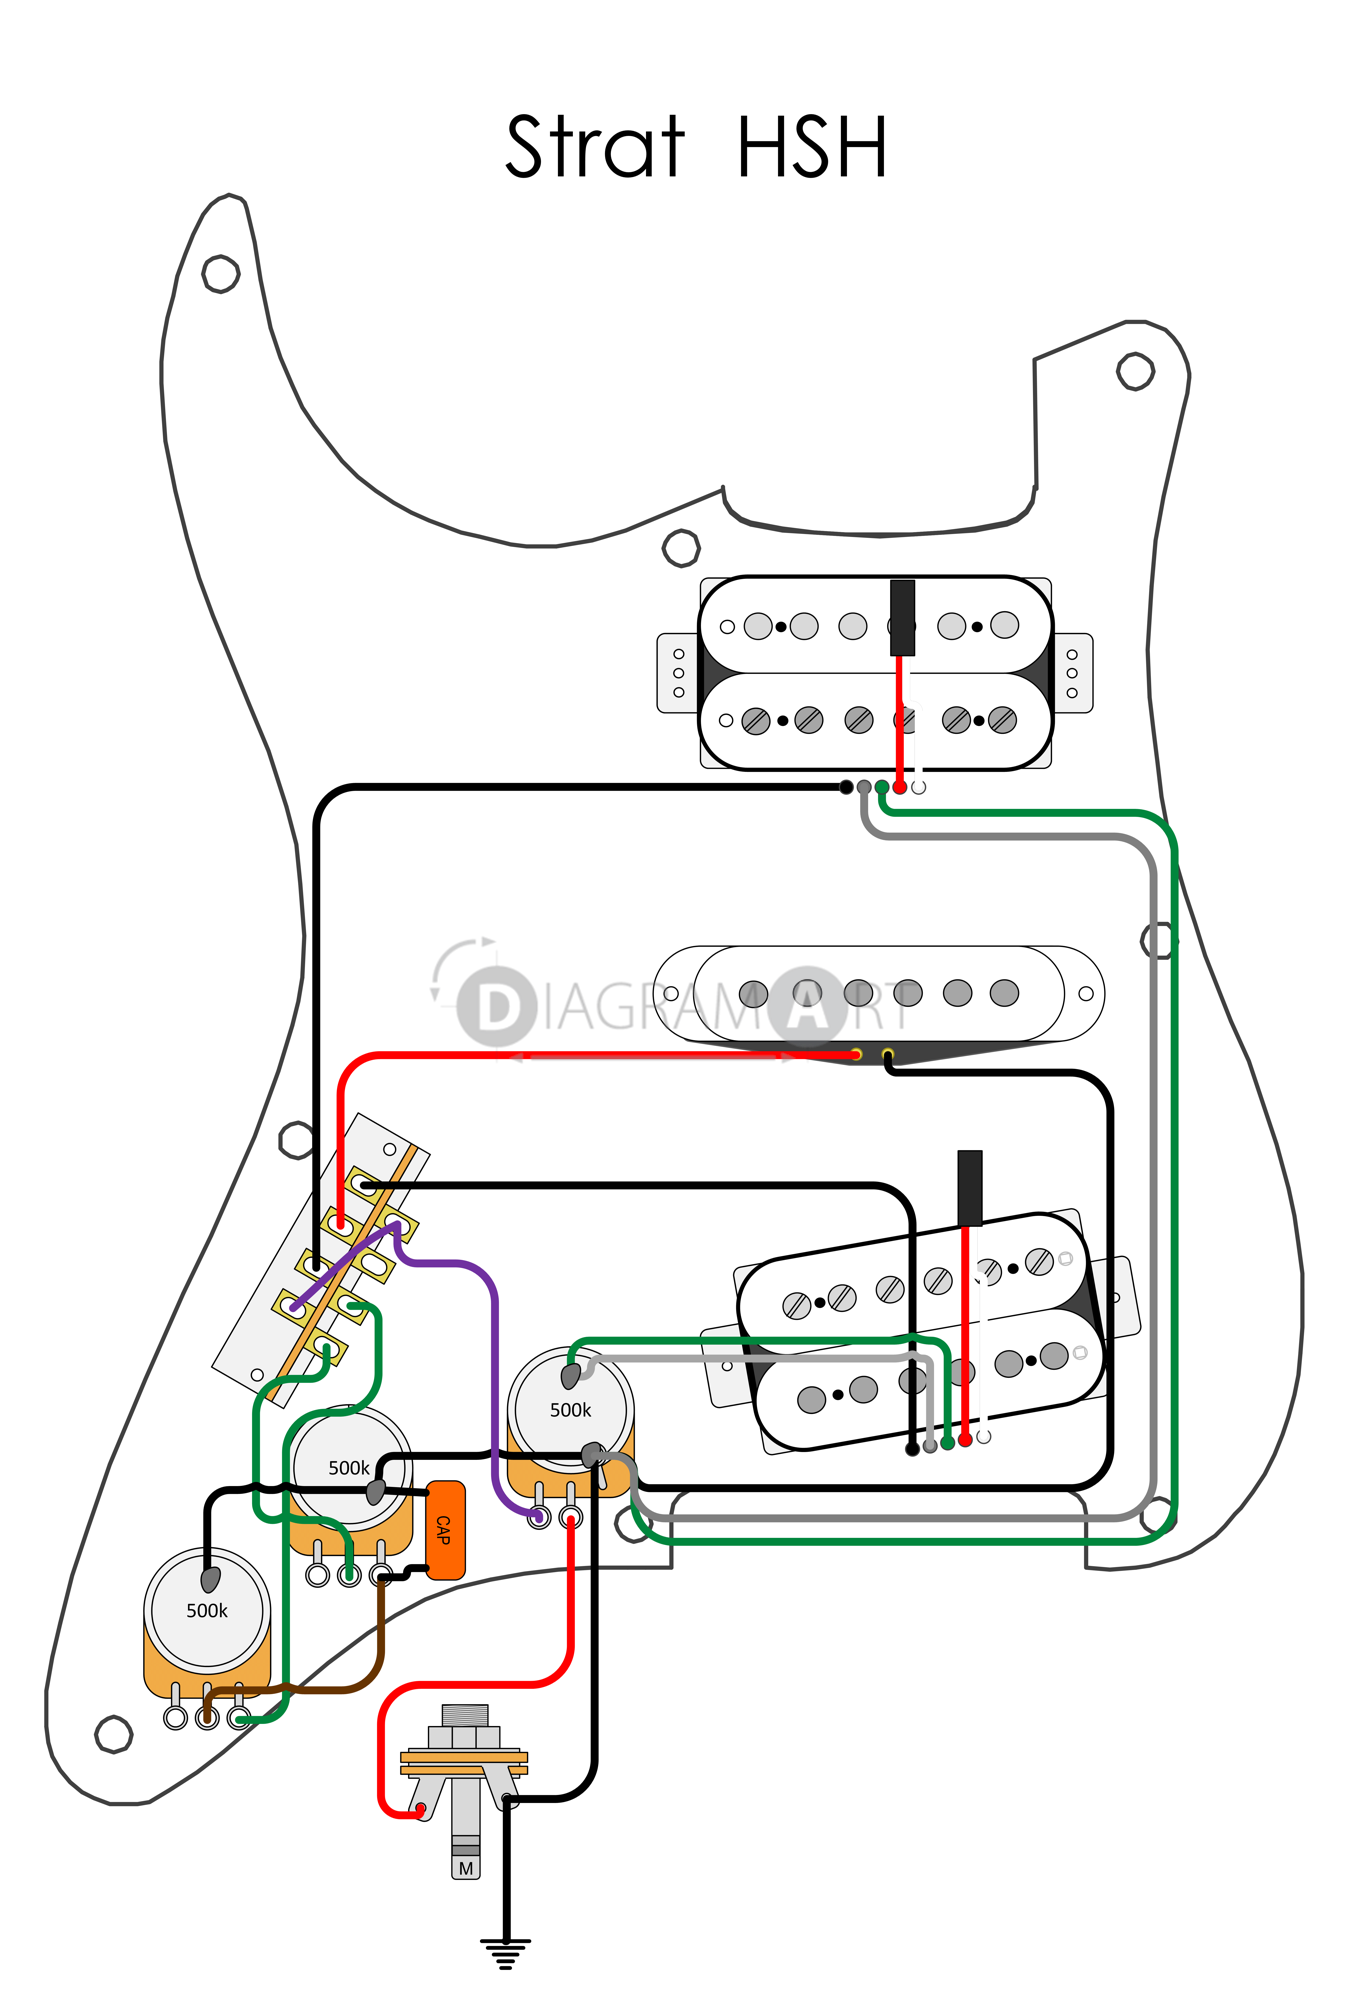 download_ef870d50 d966 419d a0f4 22998adecec6?v=1476390216 electric guitar wiring strat hsh [electric circuit] diagramart hsh guitar wiring diagrams at alyssarenee.co